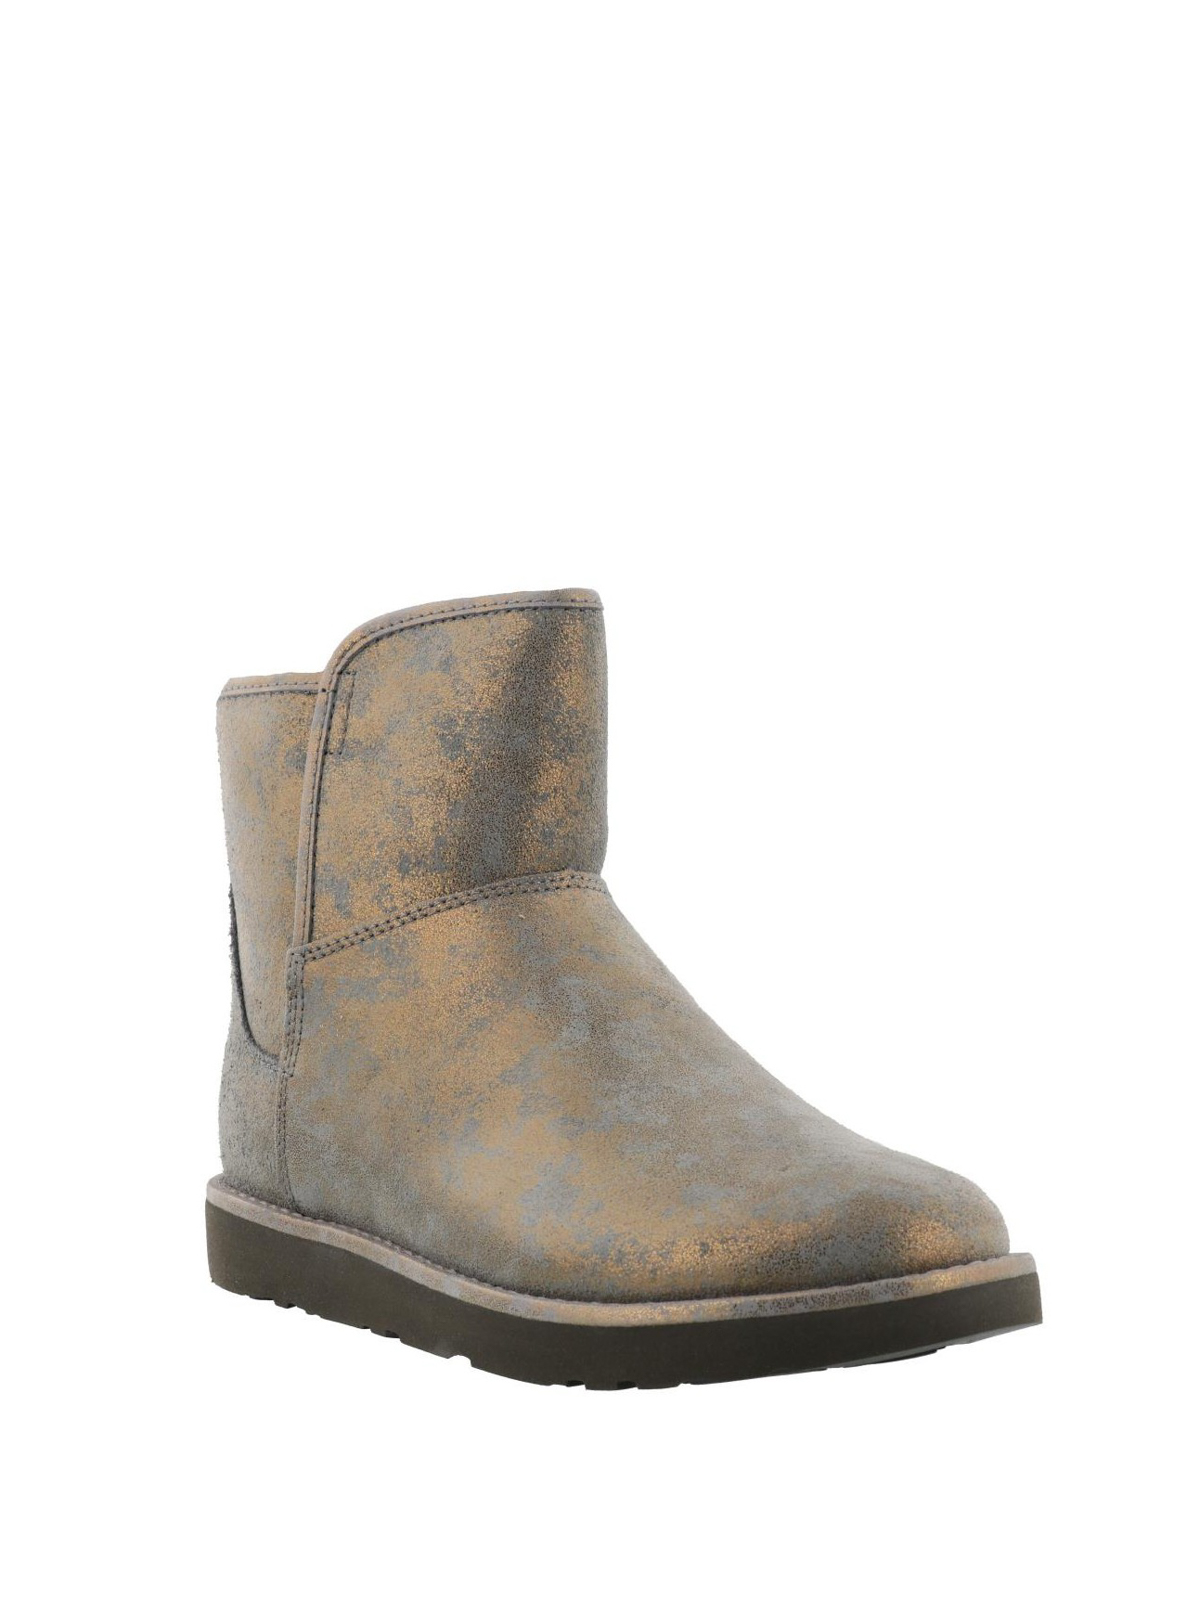 Ugg - Abree Mini Stardust ankle boots